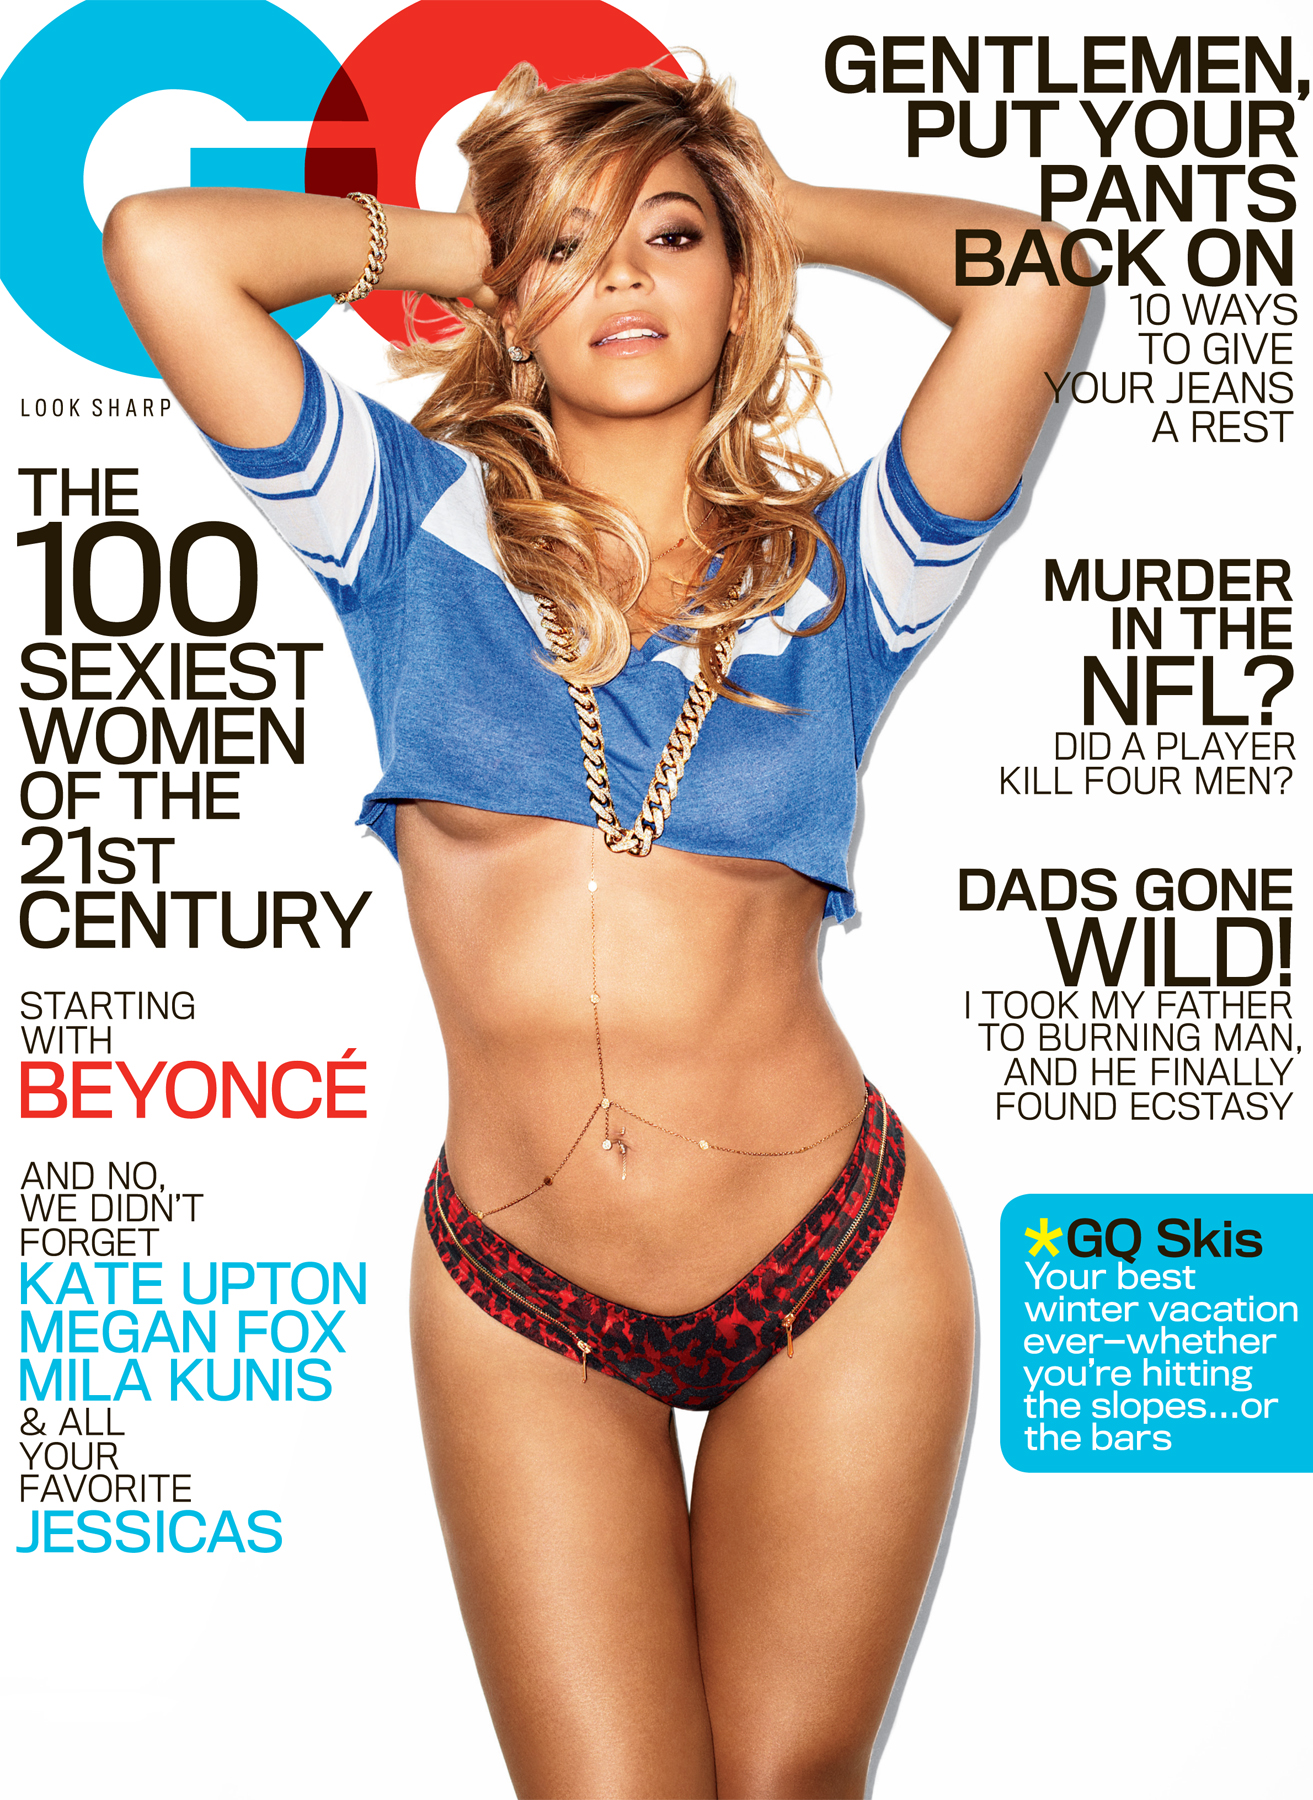 beyonce gq 2013 thatgrapejuice Beyonce Covers GQs 100 Sexiest Women Of The 21st Century